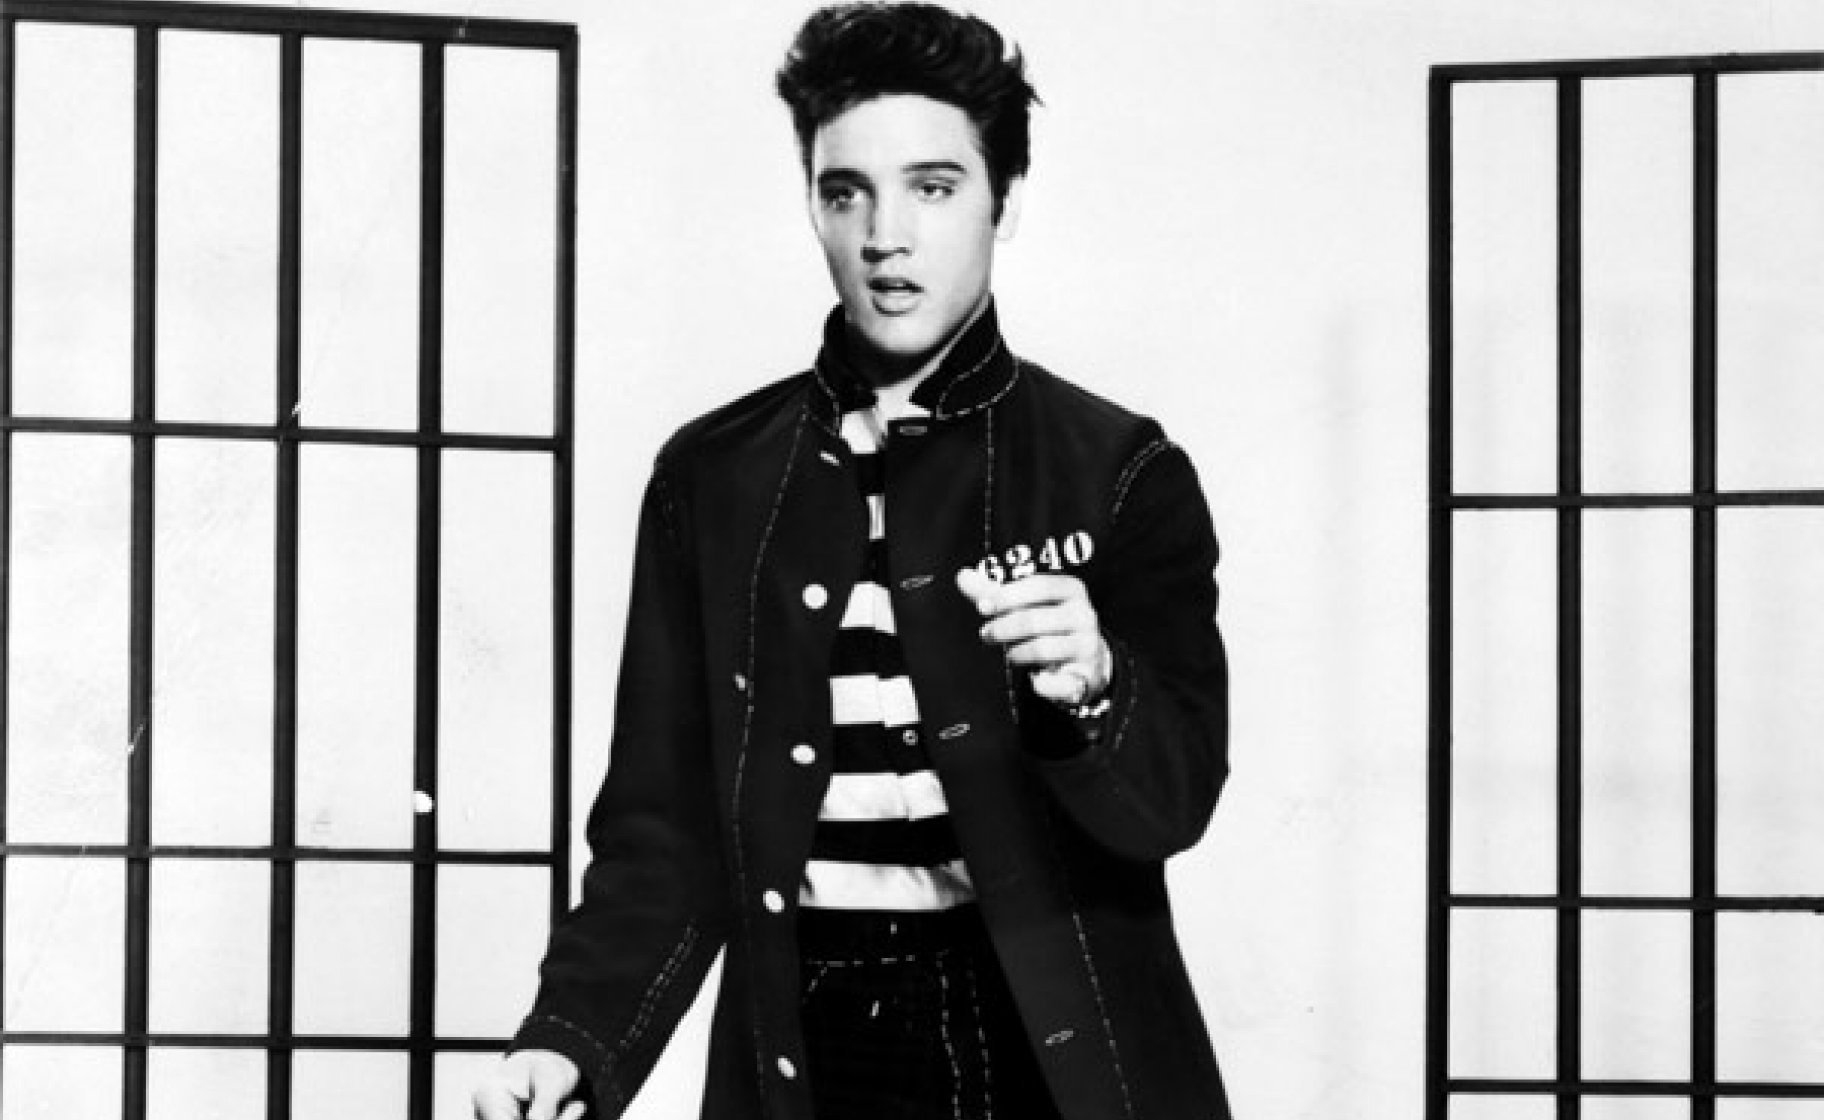 Elvis Presley in 'Jailhouse Rock', 1957. Metro-Goldwyn-Mayer, Inc./Library of Congress